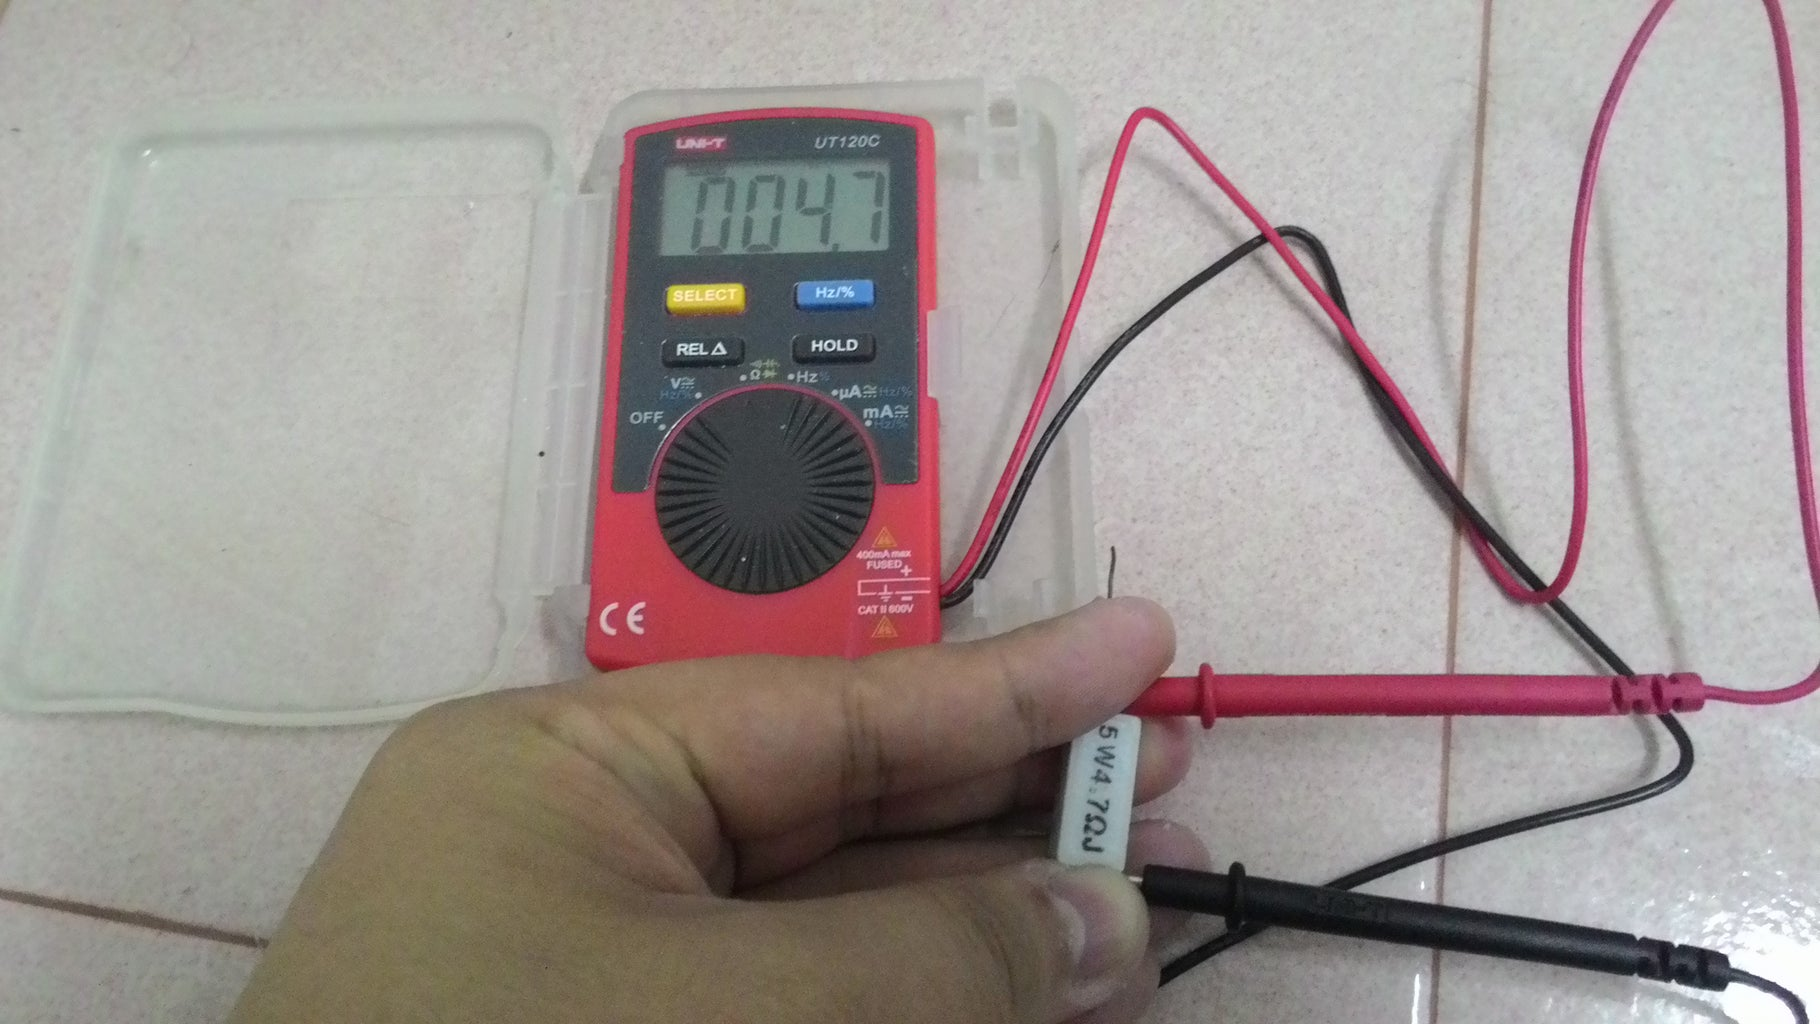 Double Confirm the Resistance of the Resistor